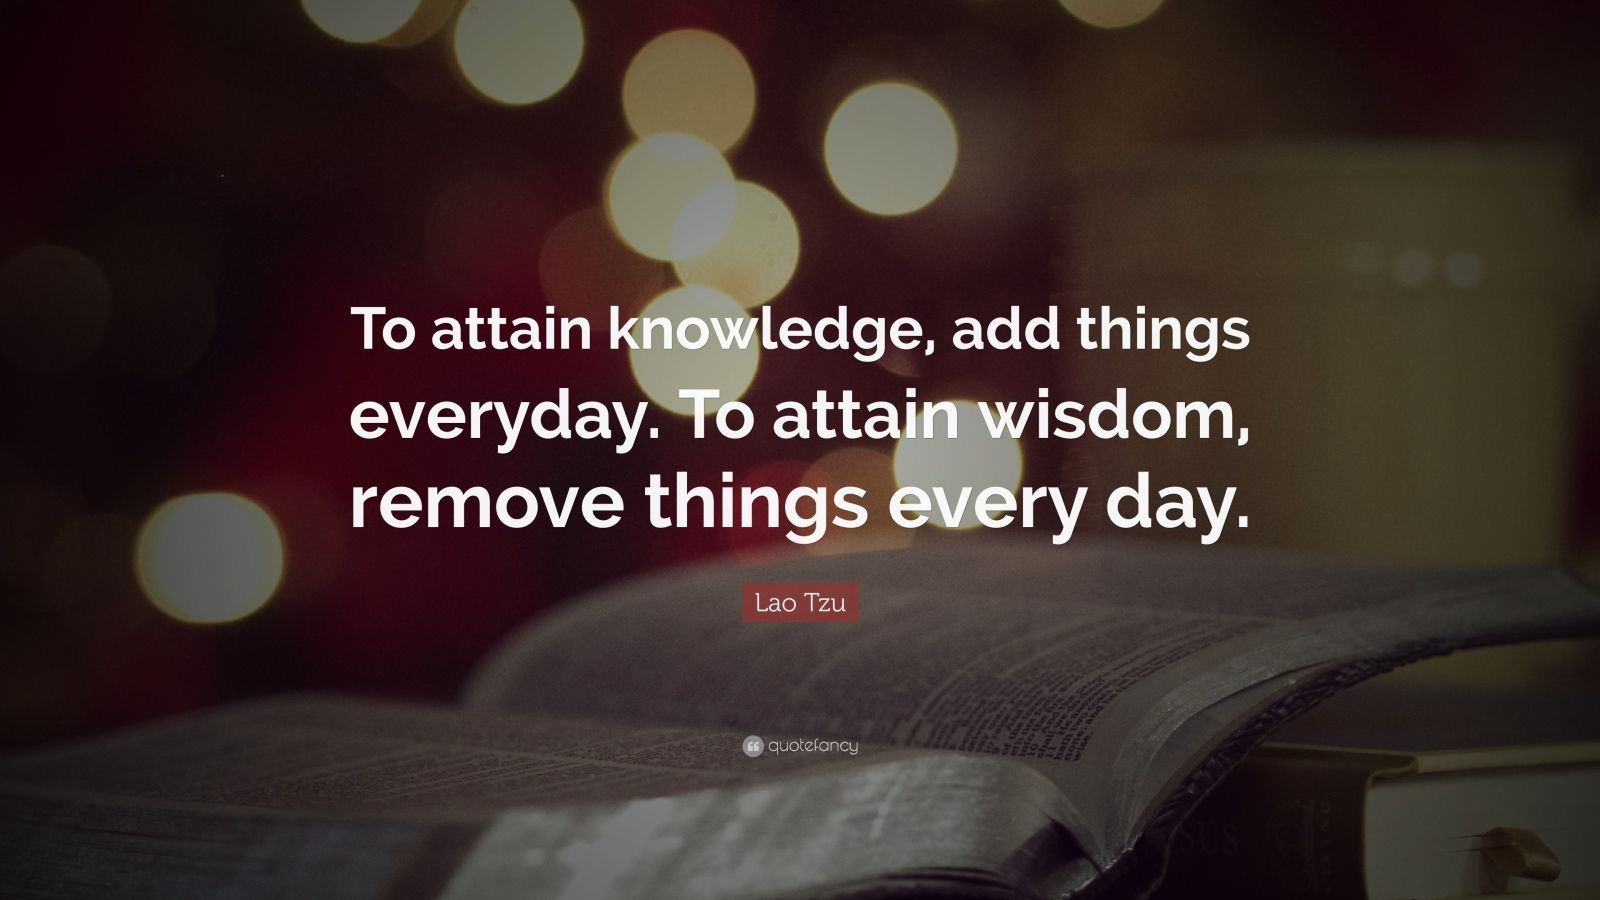 Motivational Life Quotes Wallpapers Lao Tzu Quote To Attain Knowledge Add Things Everyday